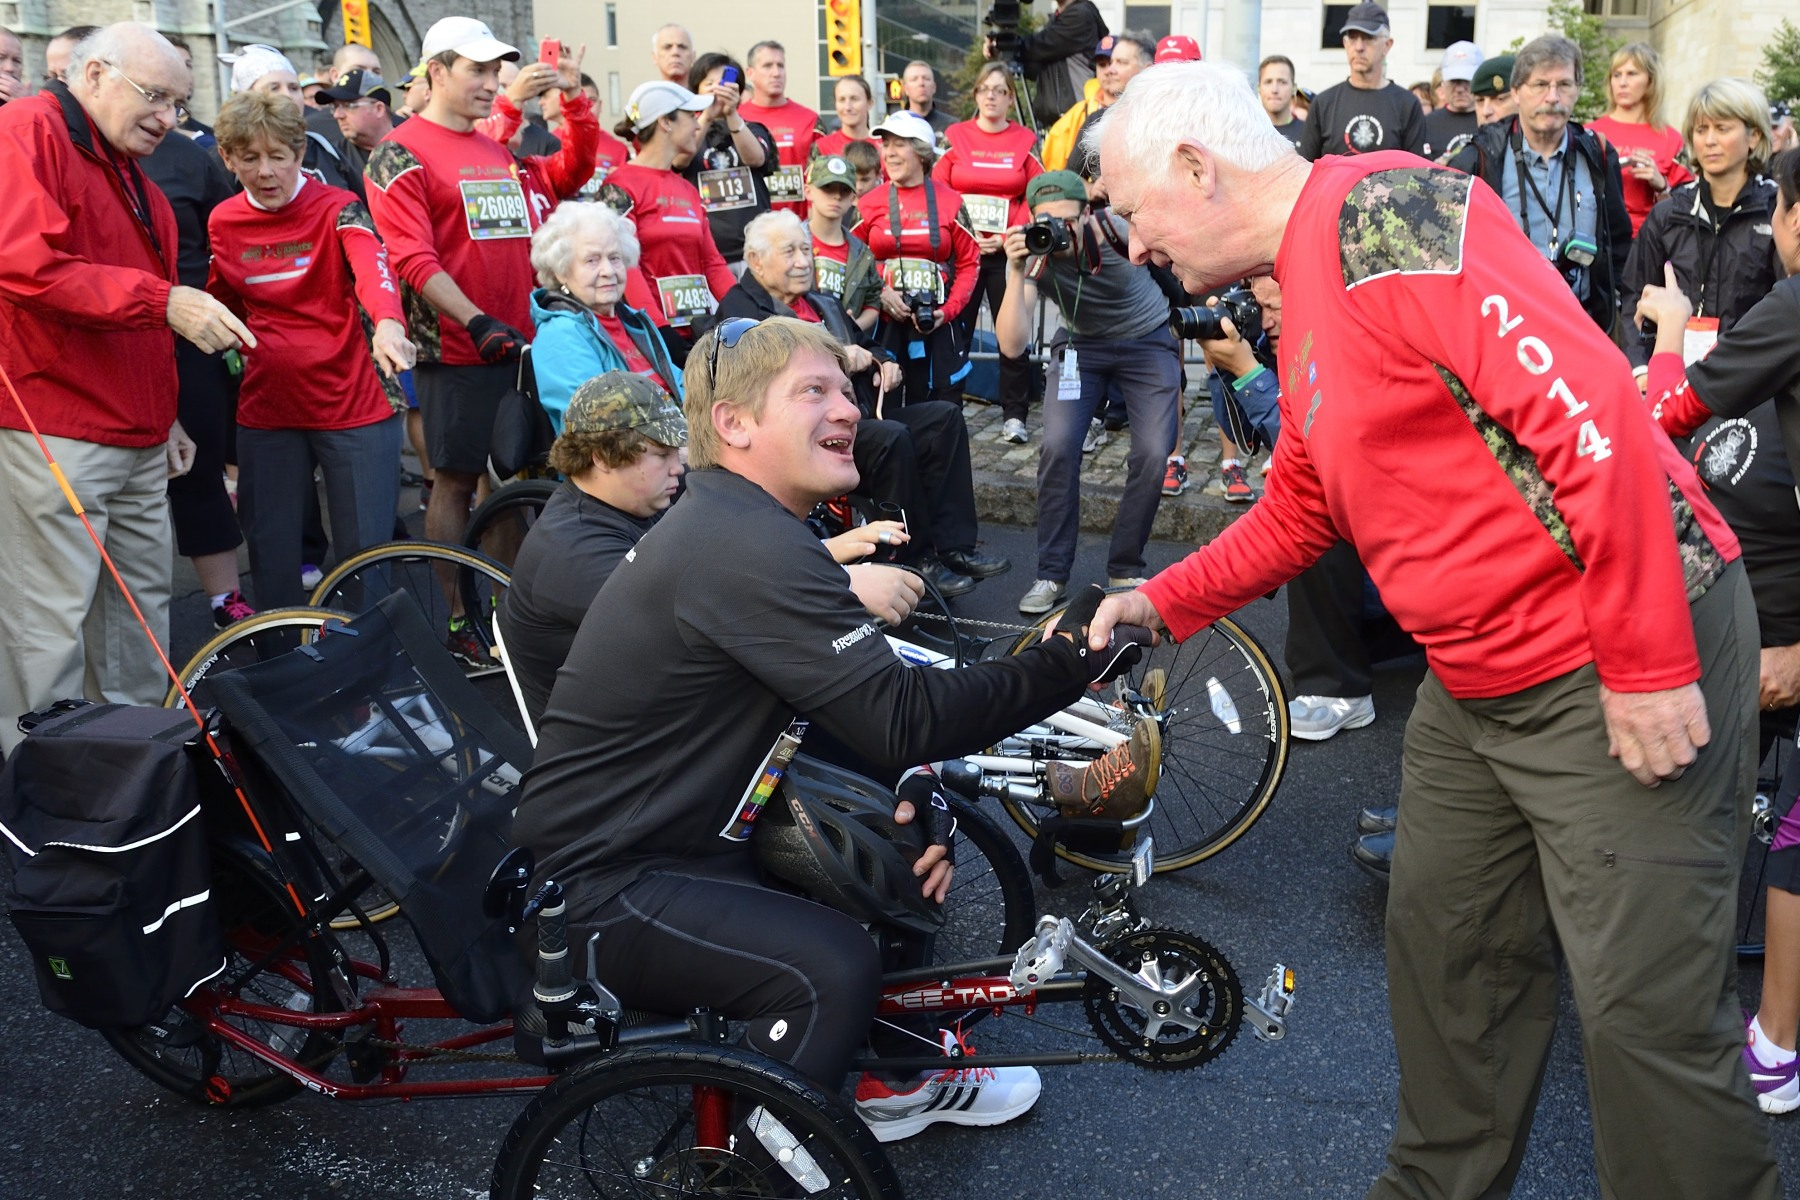 As patrons of Canada Army Run, Their Excellencies the Right Honourable David Johnston, Governor General and Commander-in-Chief of Canada, and Mrs. Sharon Johnston attended the 7th edition of the event on September 21, 2014, in downtown Ottawa.